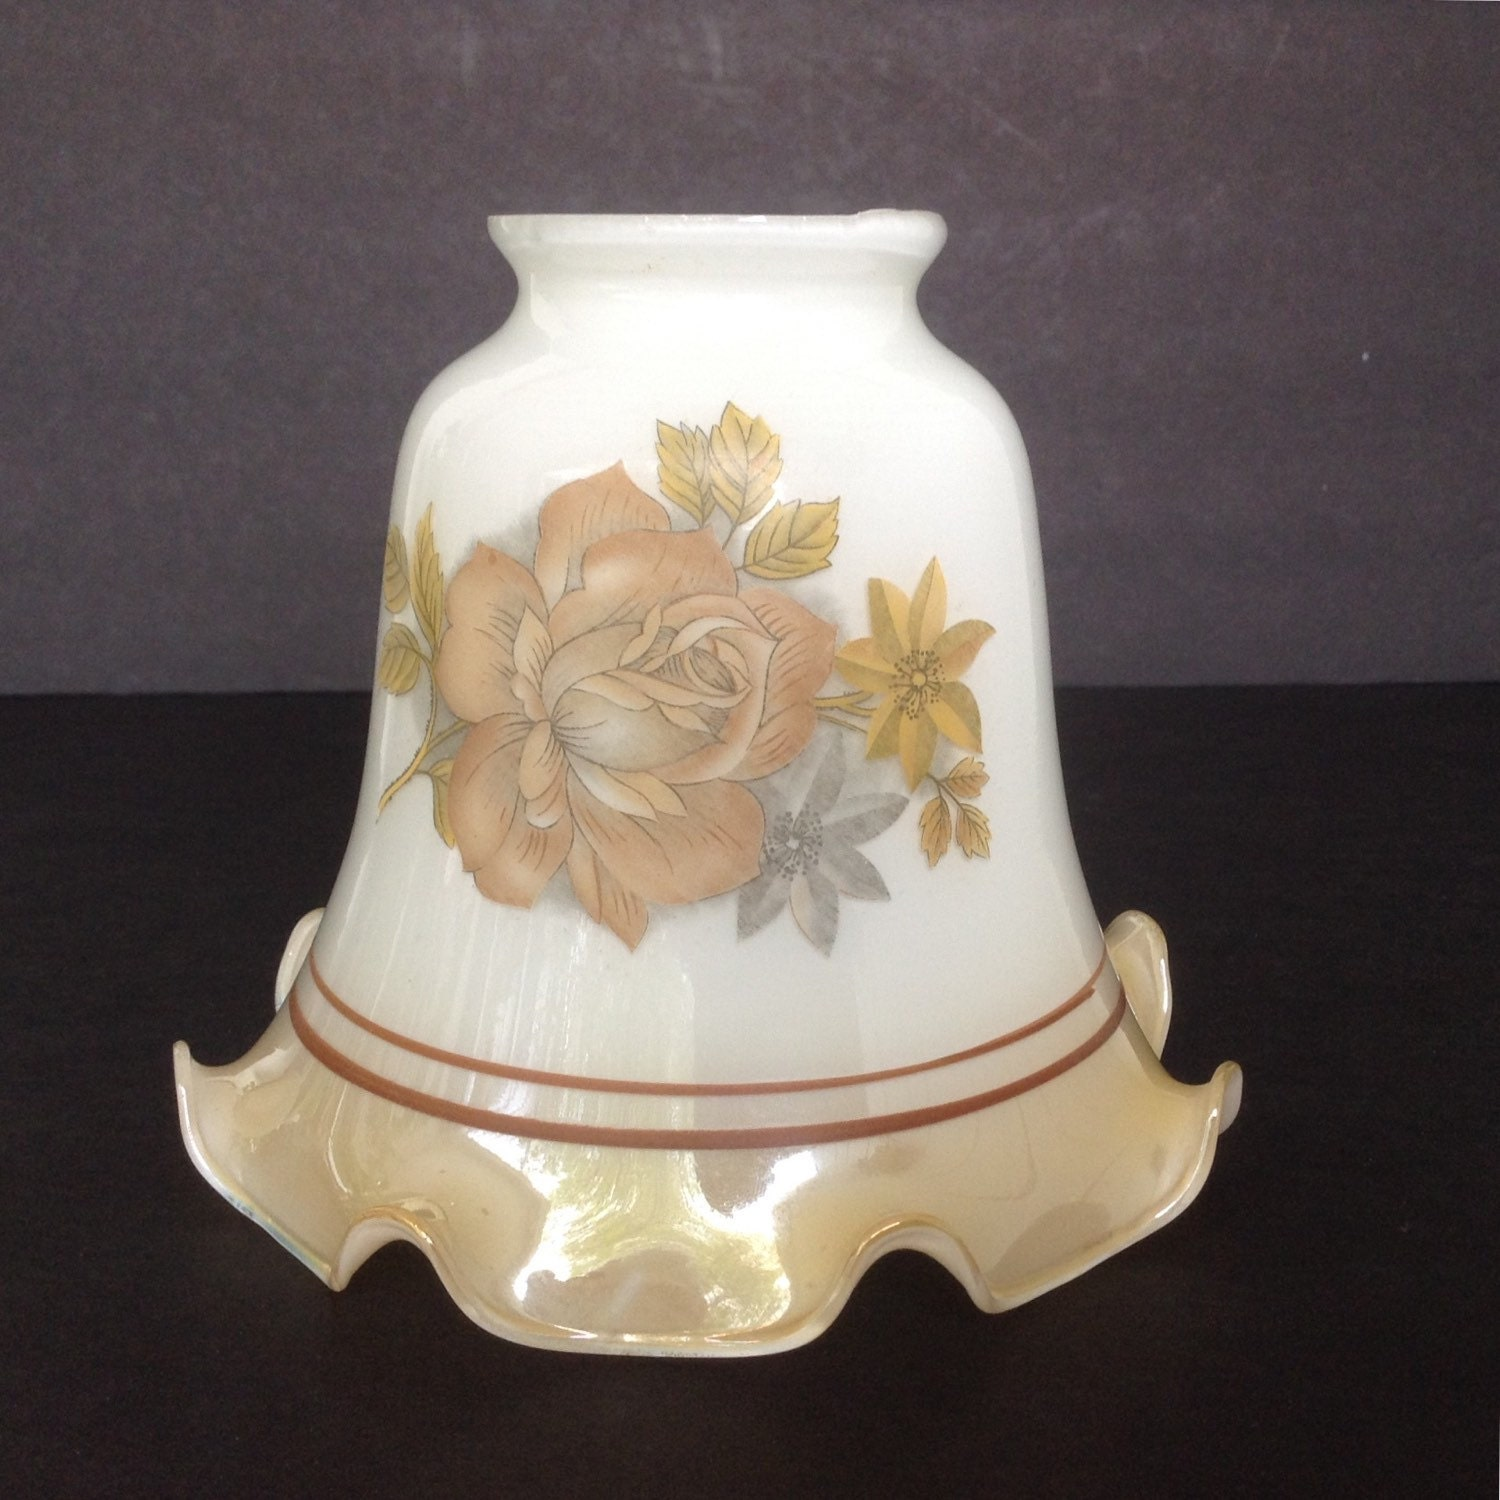 5 3 8 vintage bell light shade gold lustre w gold rose. Black Bedroom Furniture Sets. Home Design Ideas